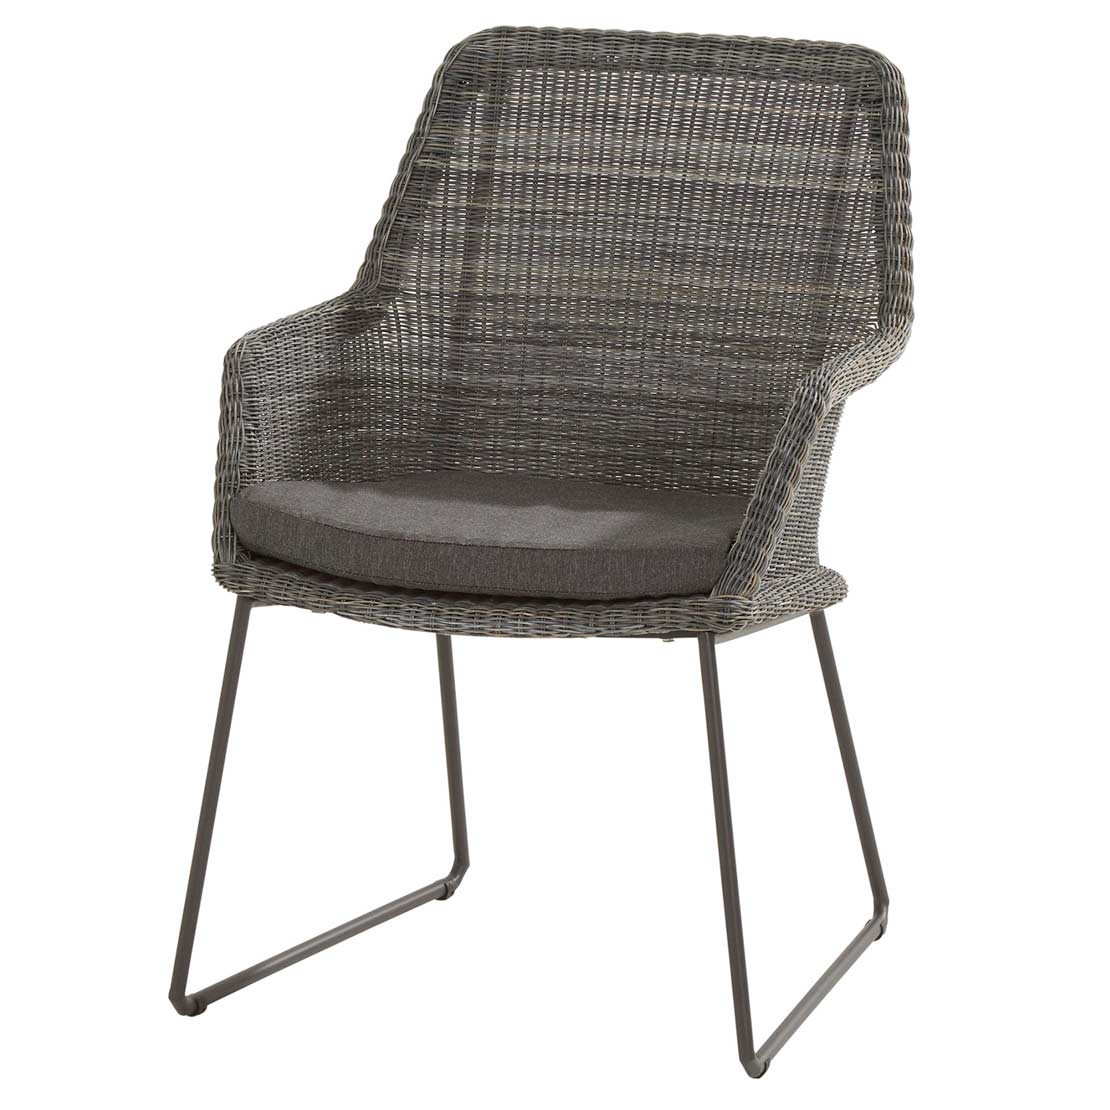 Samoa dining chair Ecoloom Charcoal with cushion